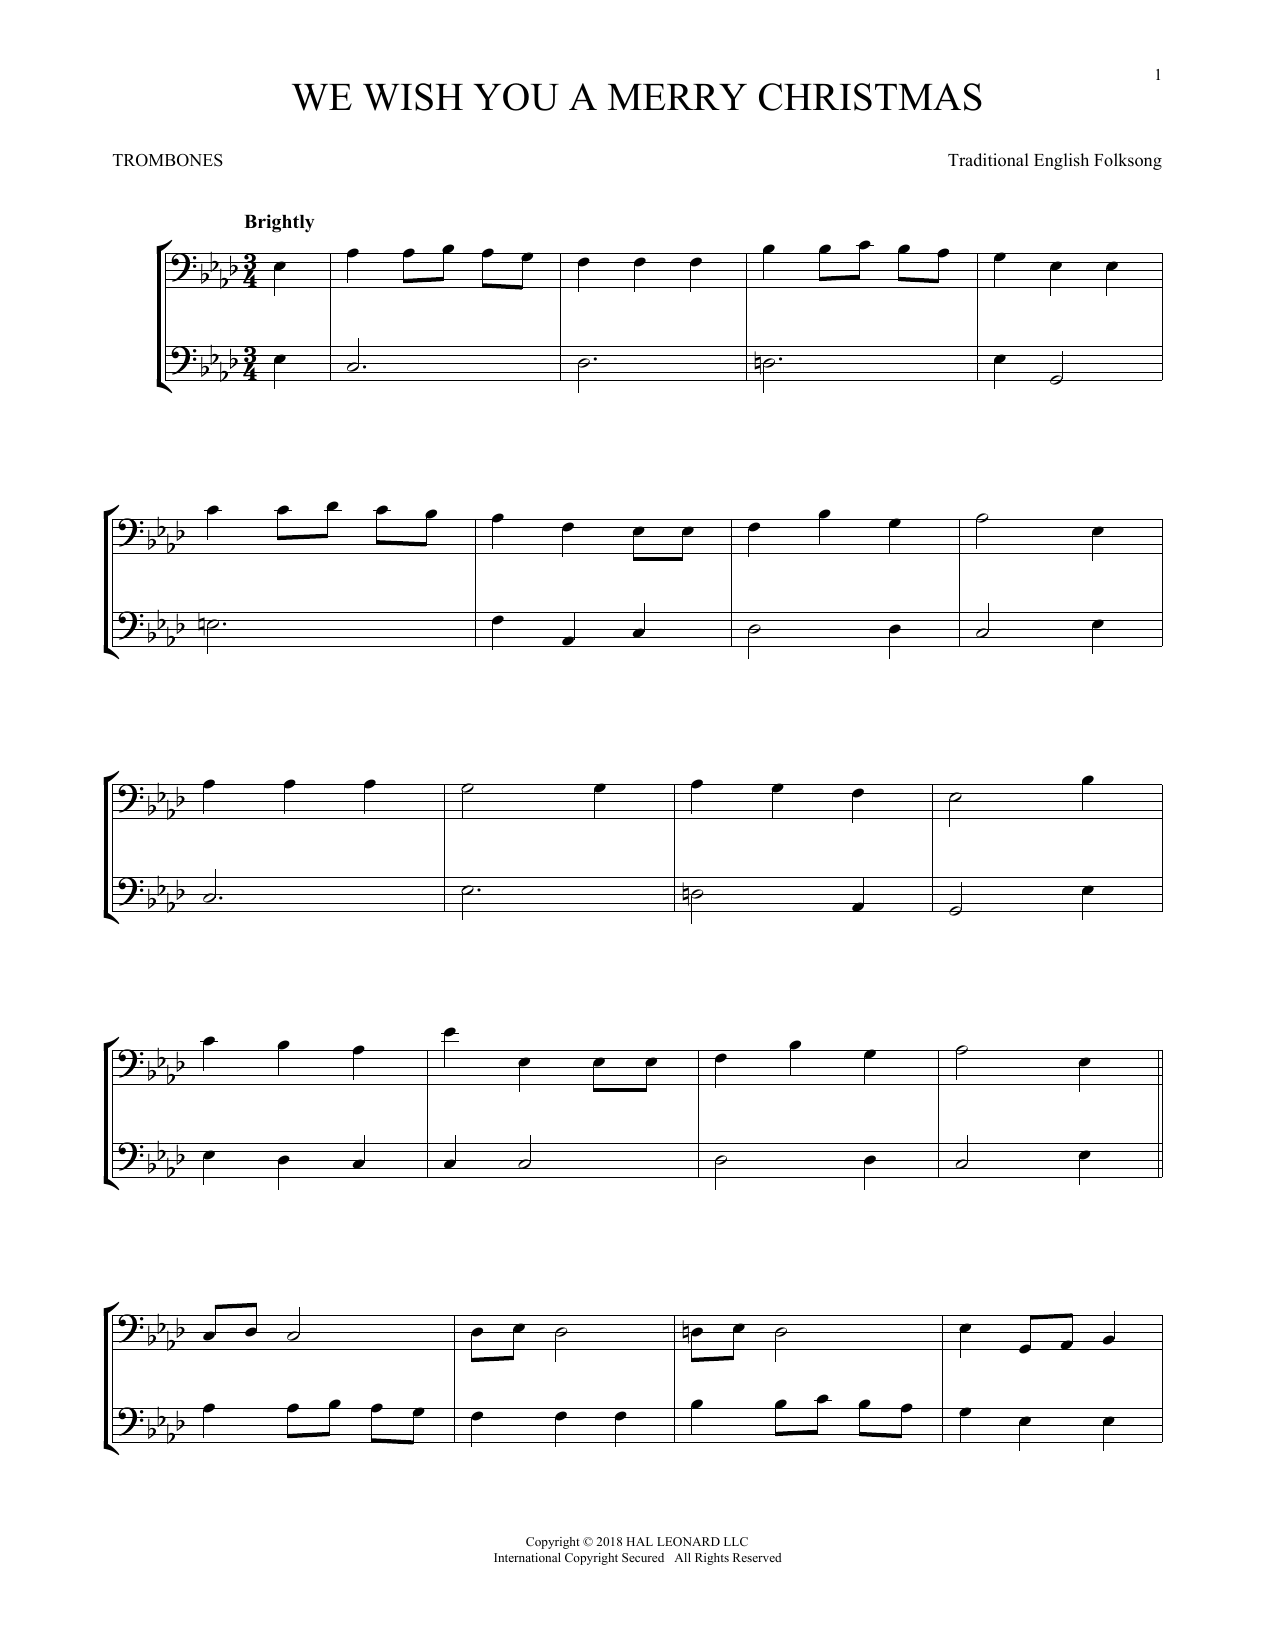 We Wish You A Merry Christmas (Trombone Transcription)